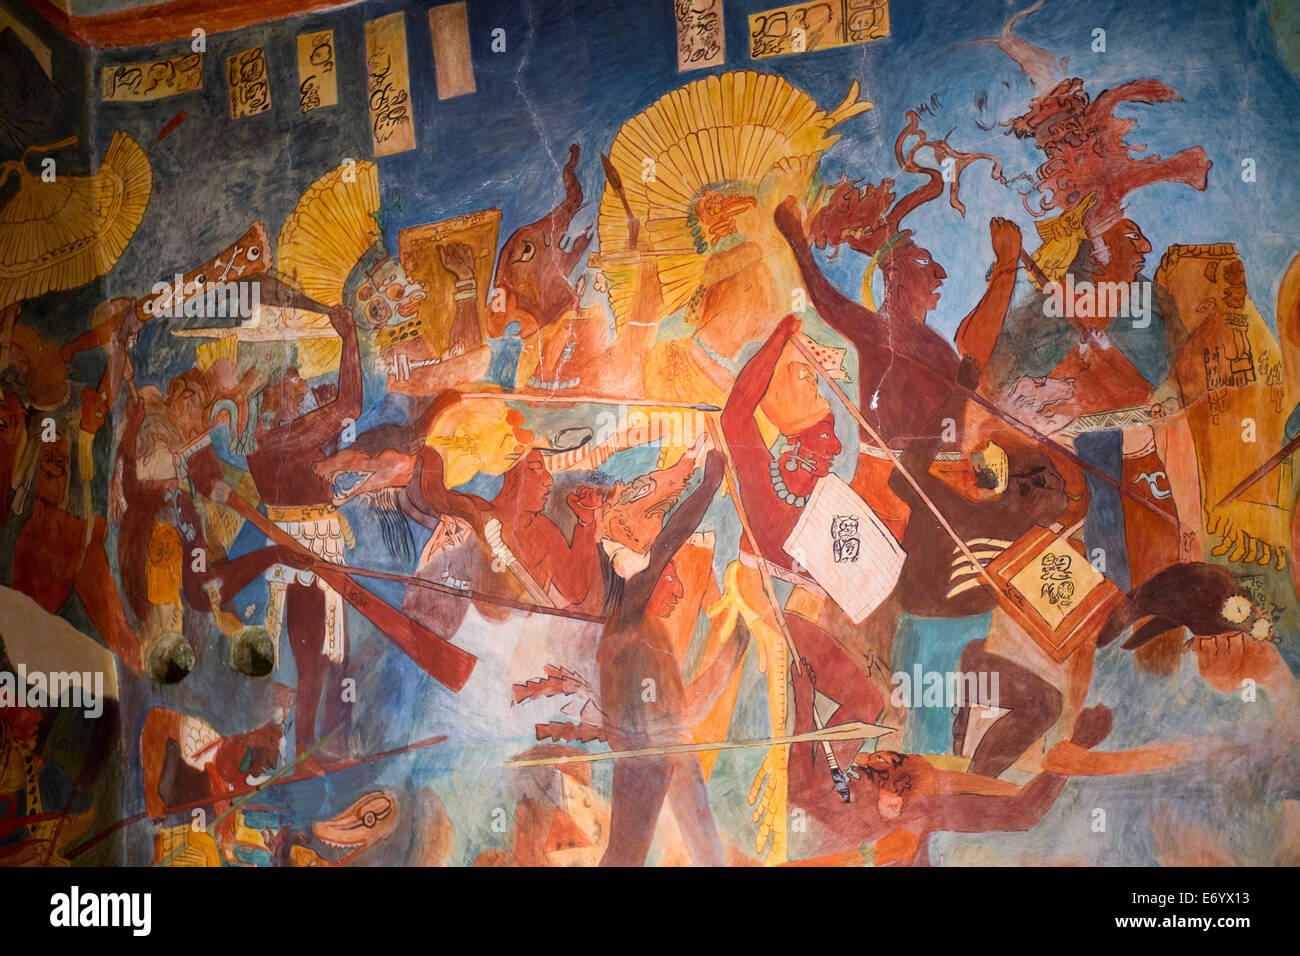 Mexico, Mexico City, National Museum of Anthropology, Reproduction of Bonampak Murals, Room 2 - Stock Image